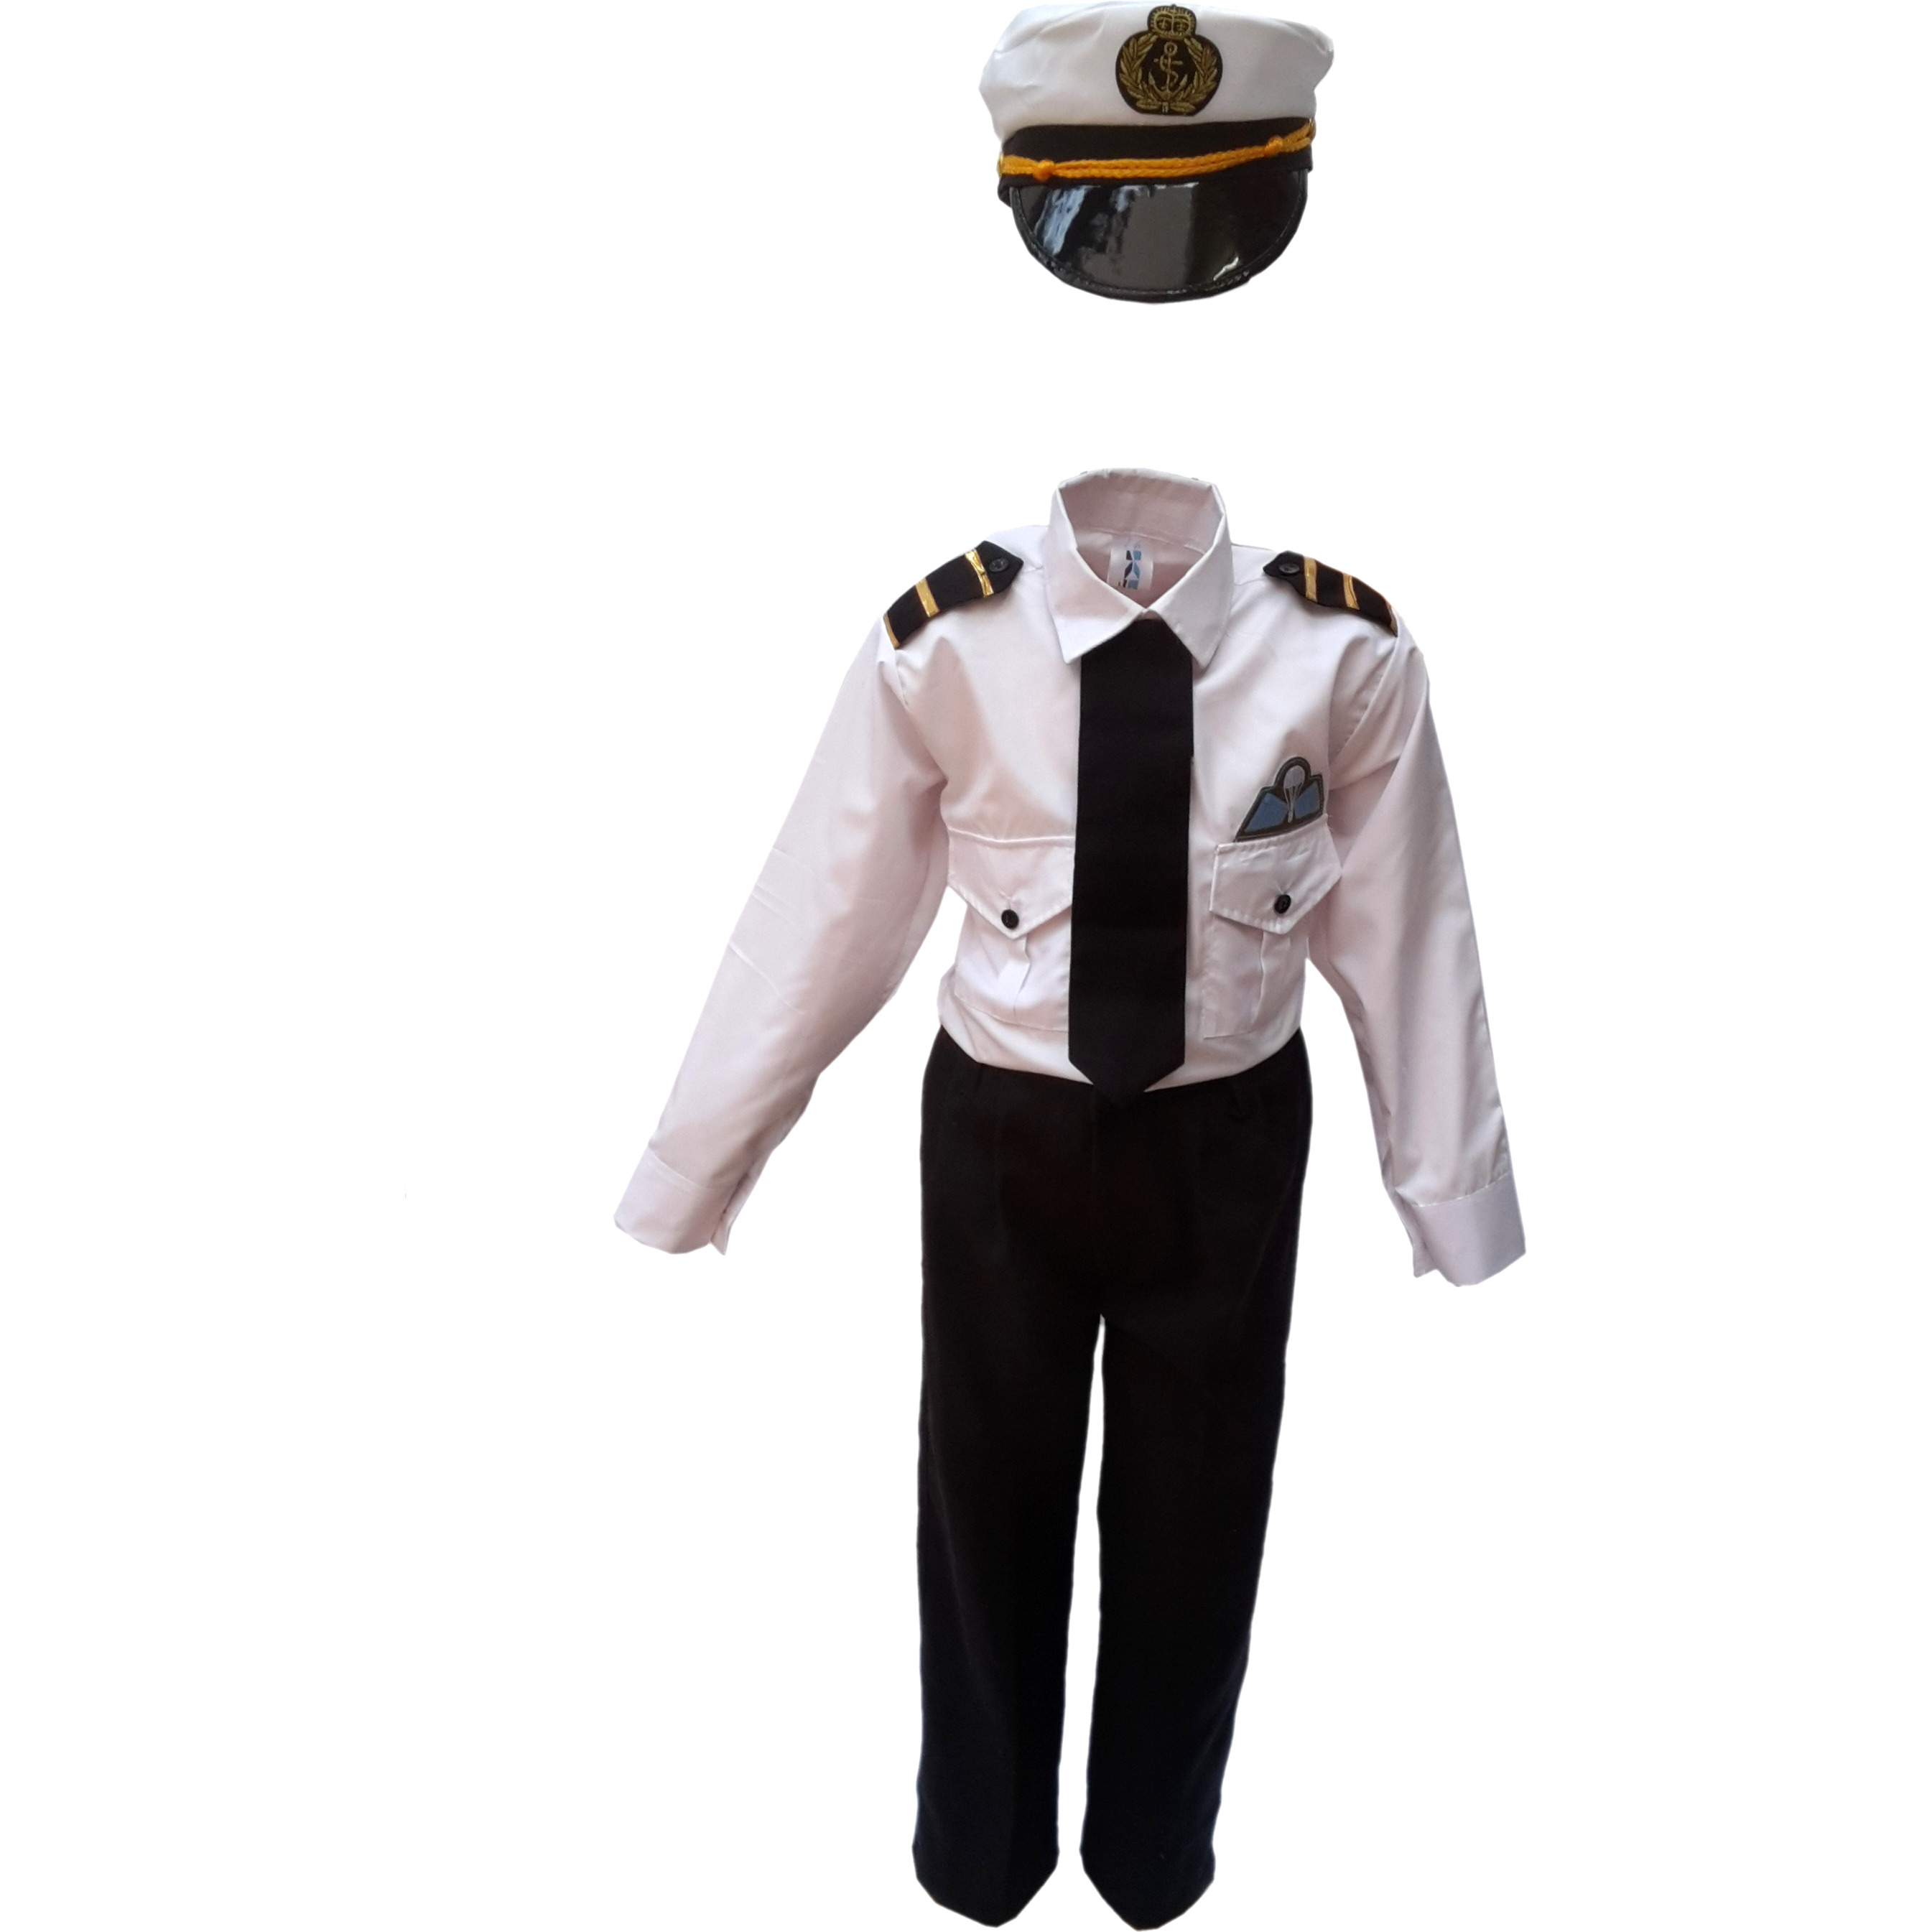 KFD Pilot Fancy Dress For Kids,Our Helper Costume For Annual Function/Theme Party/Competition/Stage Shows Dress